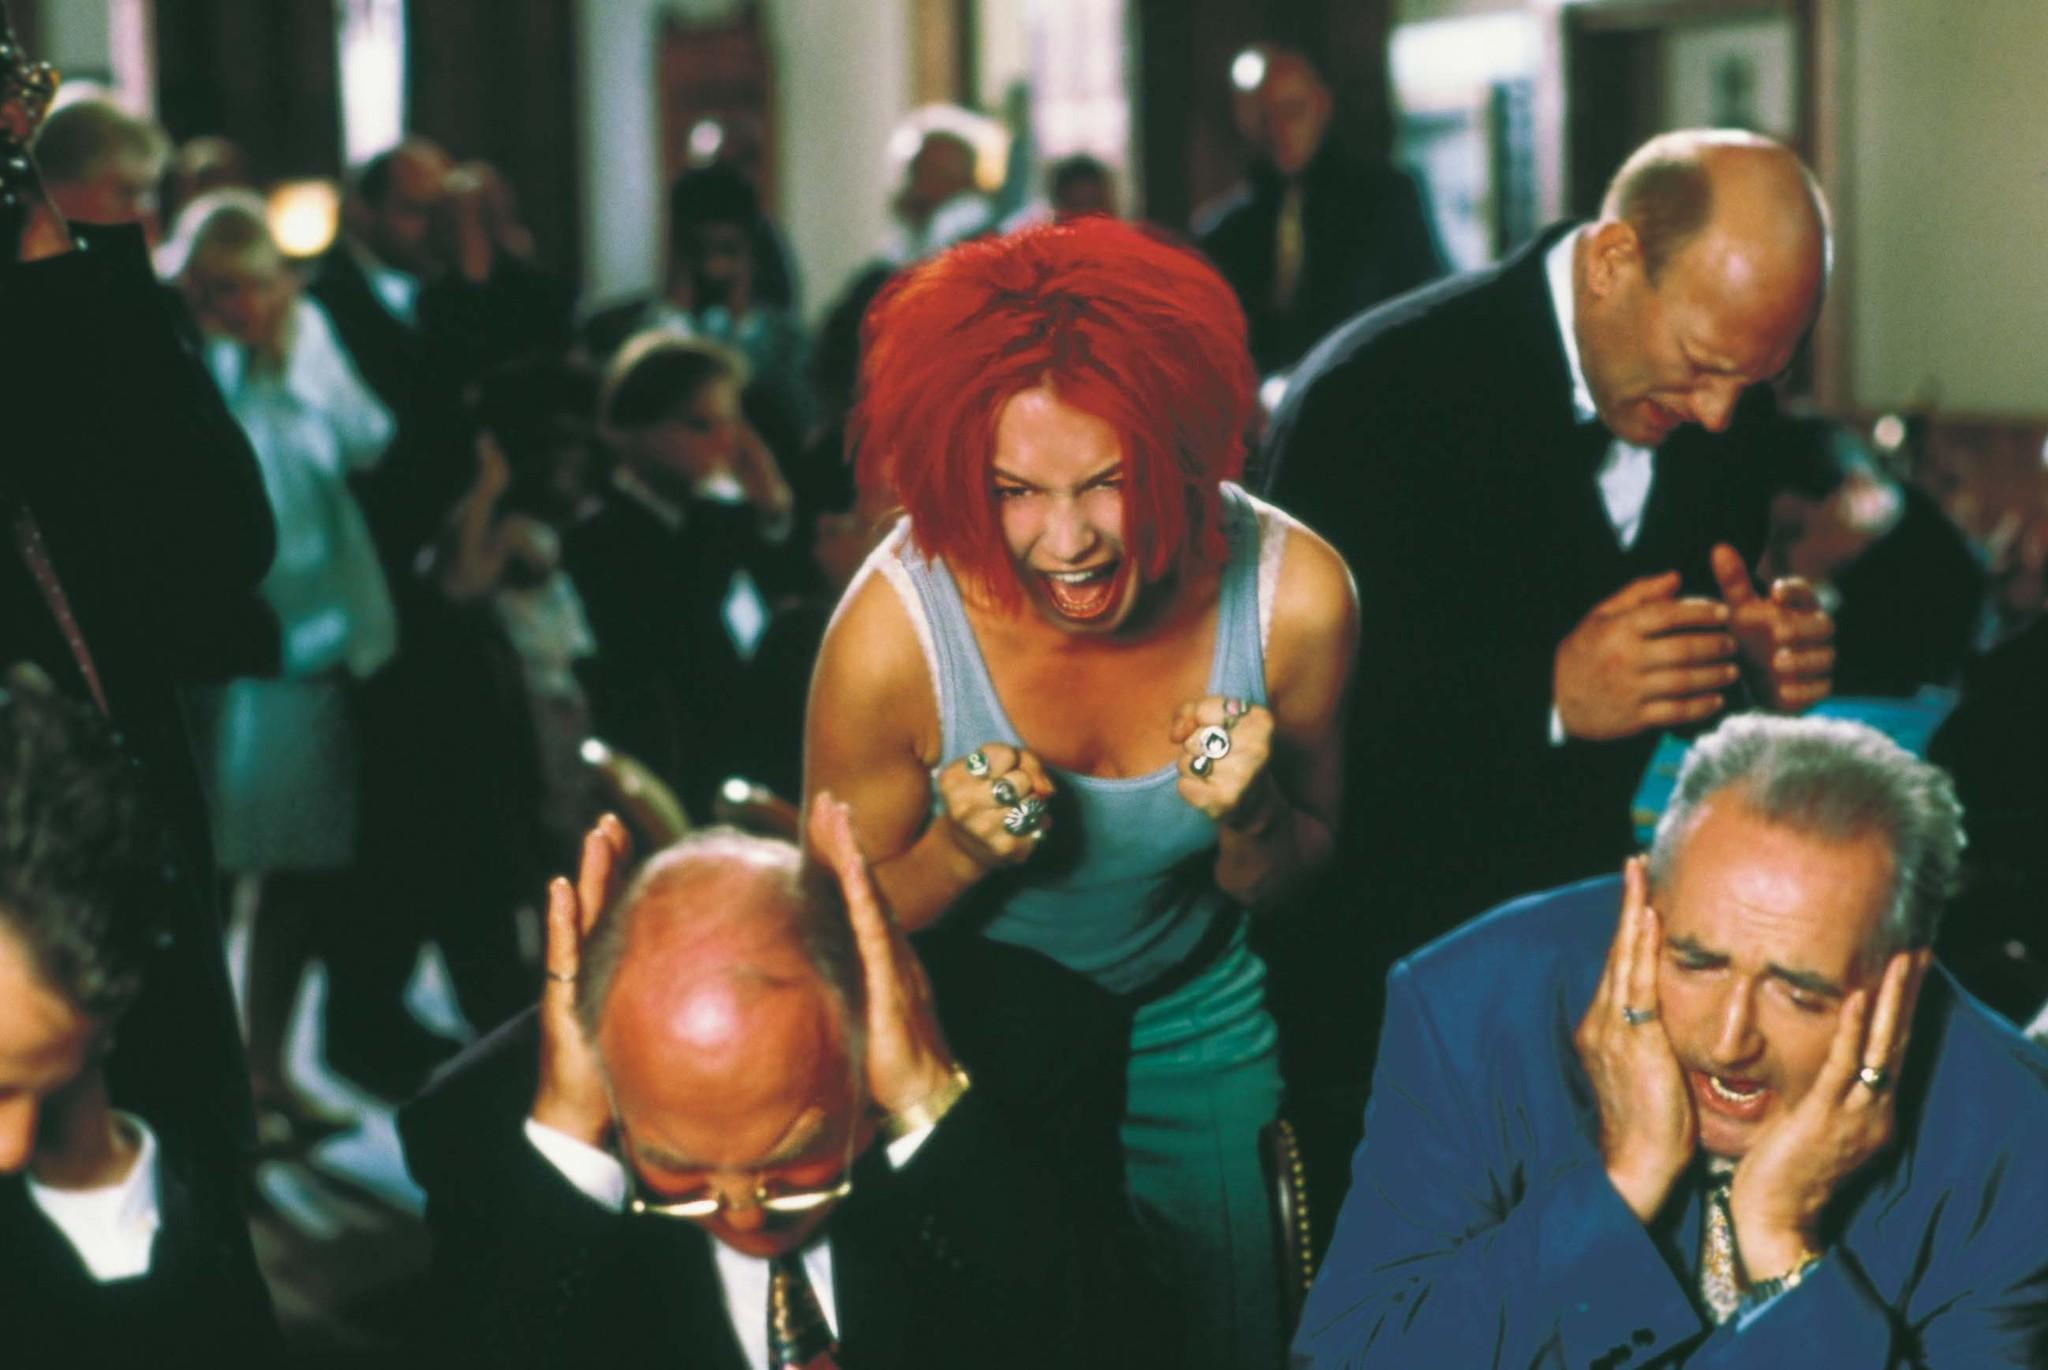 still-of-franka-potente-in-lola-rennt-(1998)-large-picture